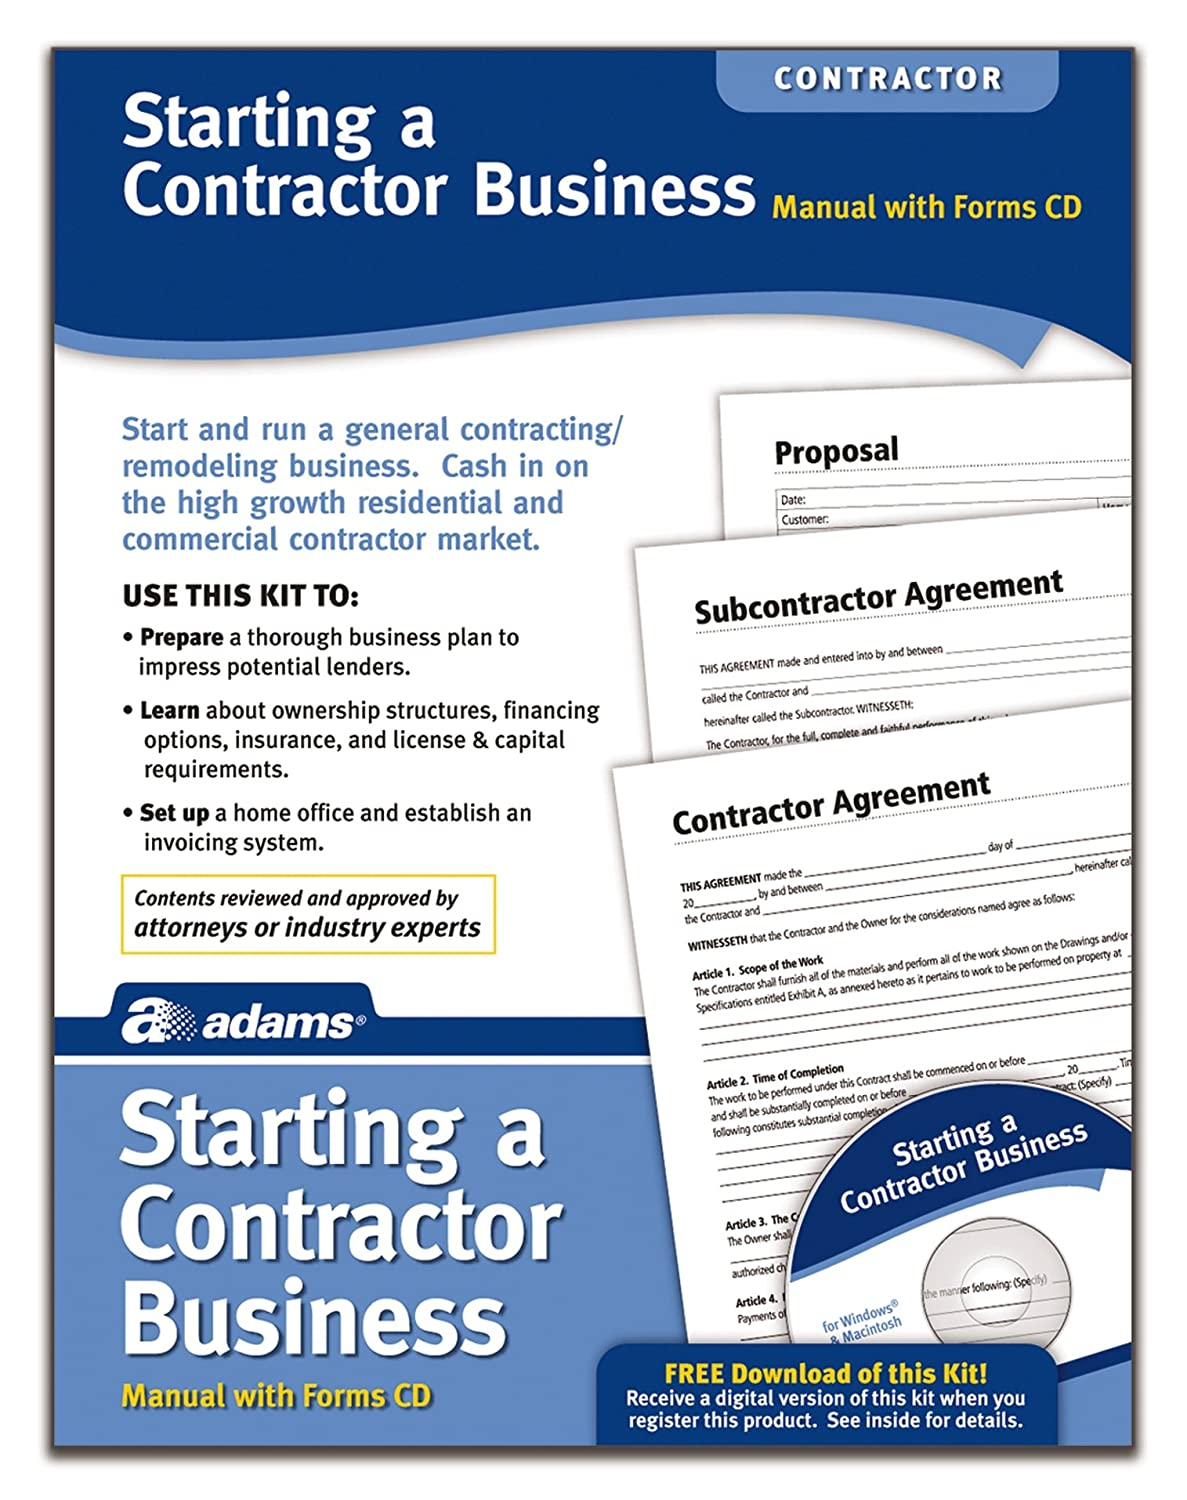 Amazon.com : Adams Starting A Contractor Business Kit, Includes Forms CD  and Instructions (PK216) : Legal Forms : Office Products